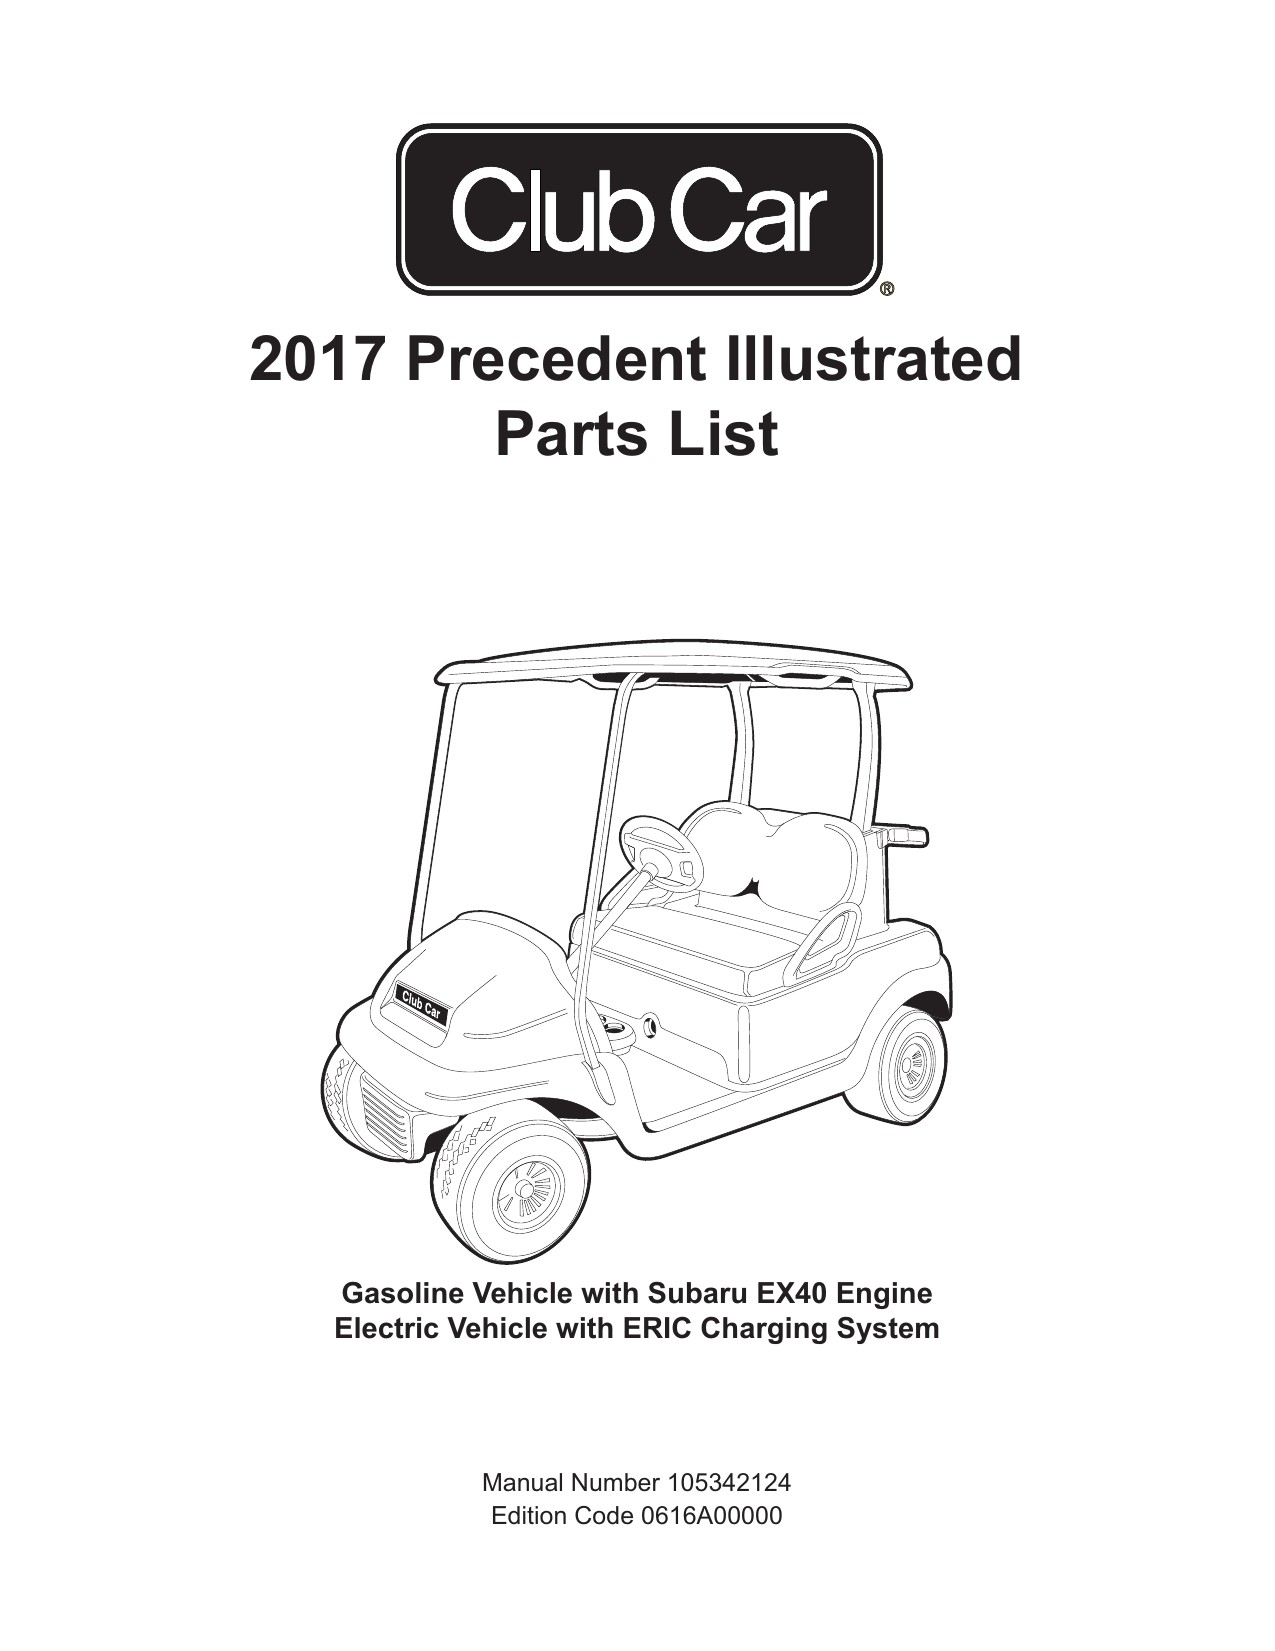 Adjusting The Forward And Reverse Switch On Club Car